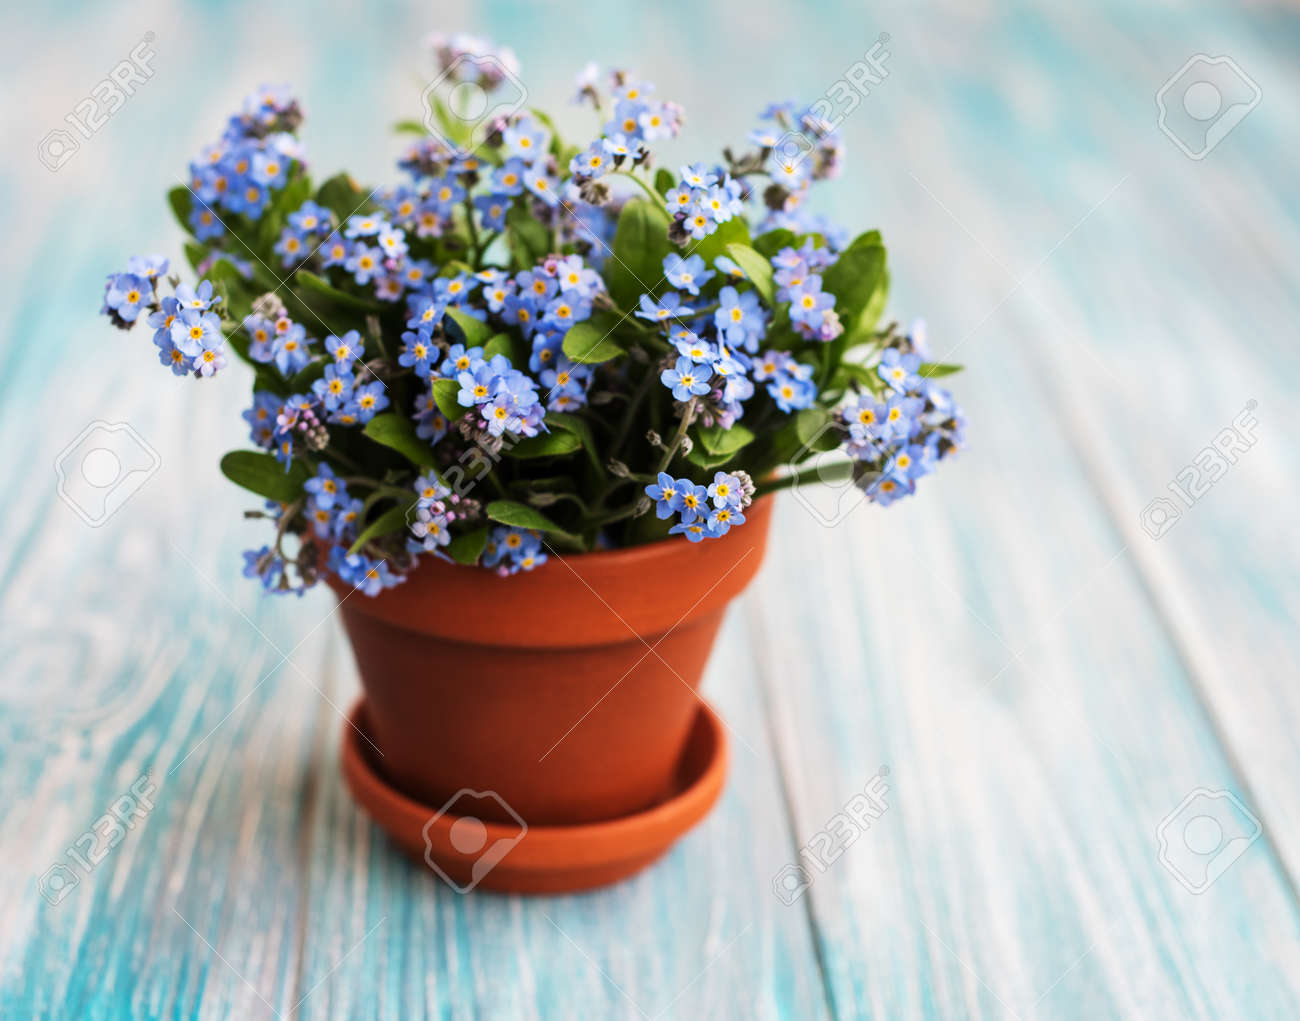 123RF.com & Forget-me-not flowers in small flower pot on a table